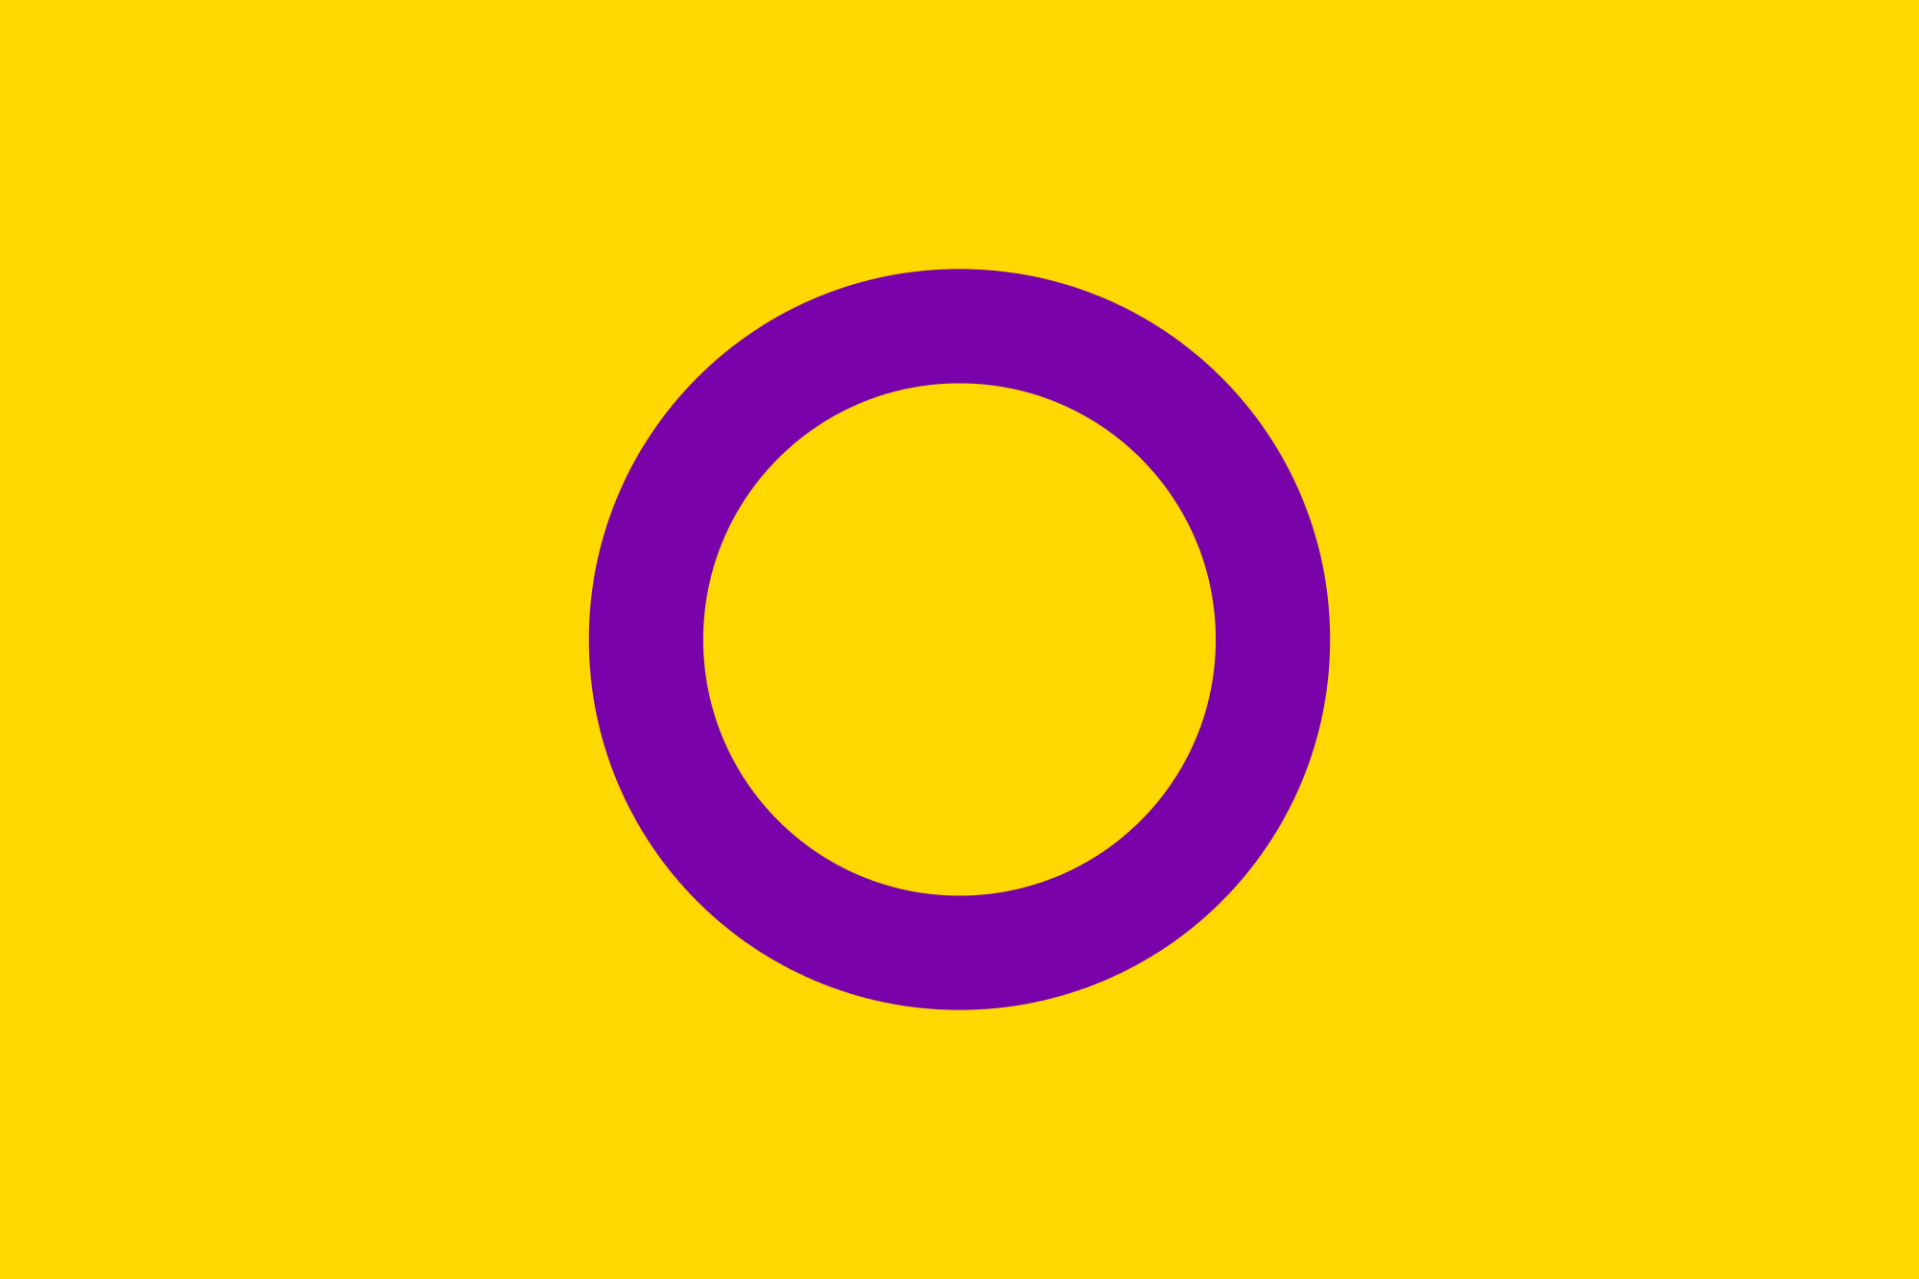 Intersex_flag.svg